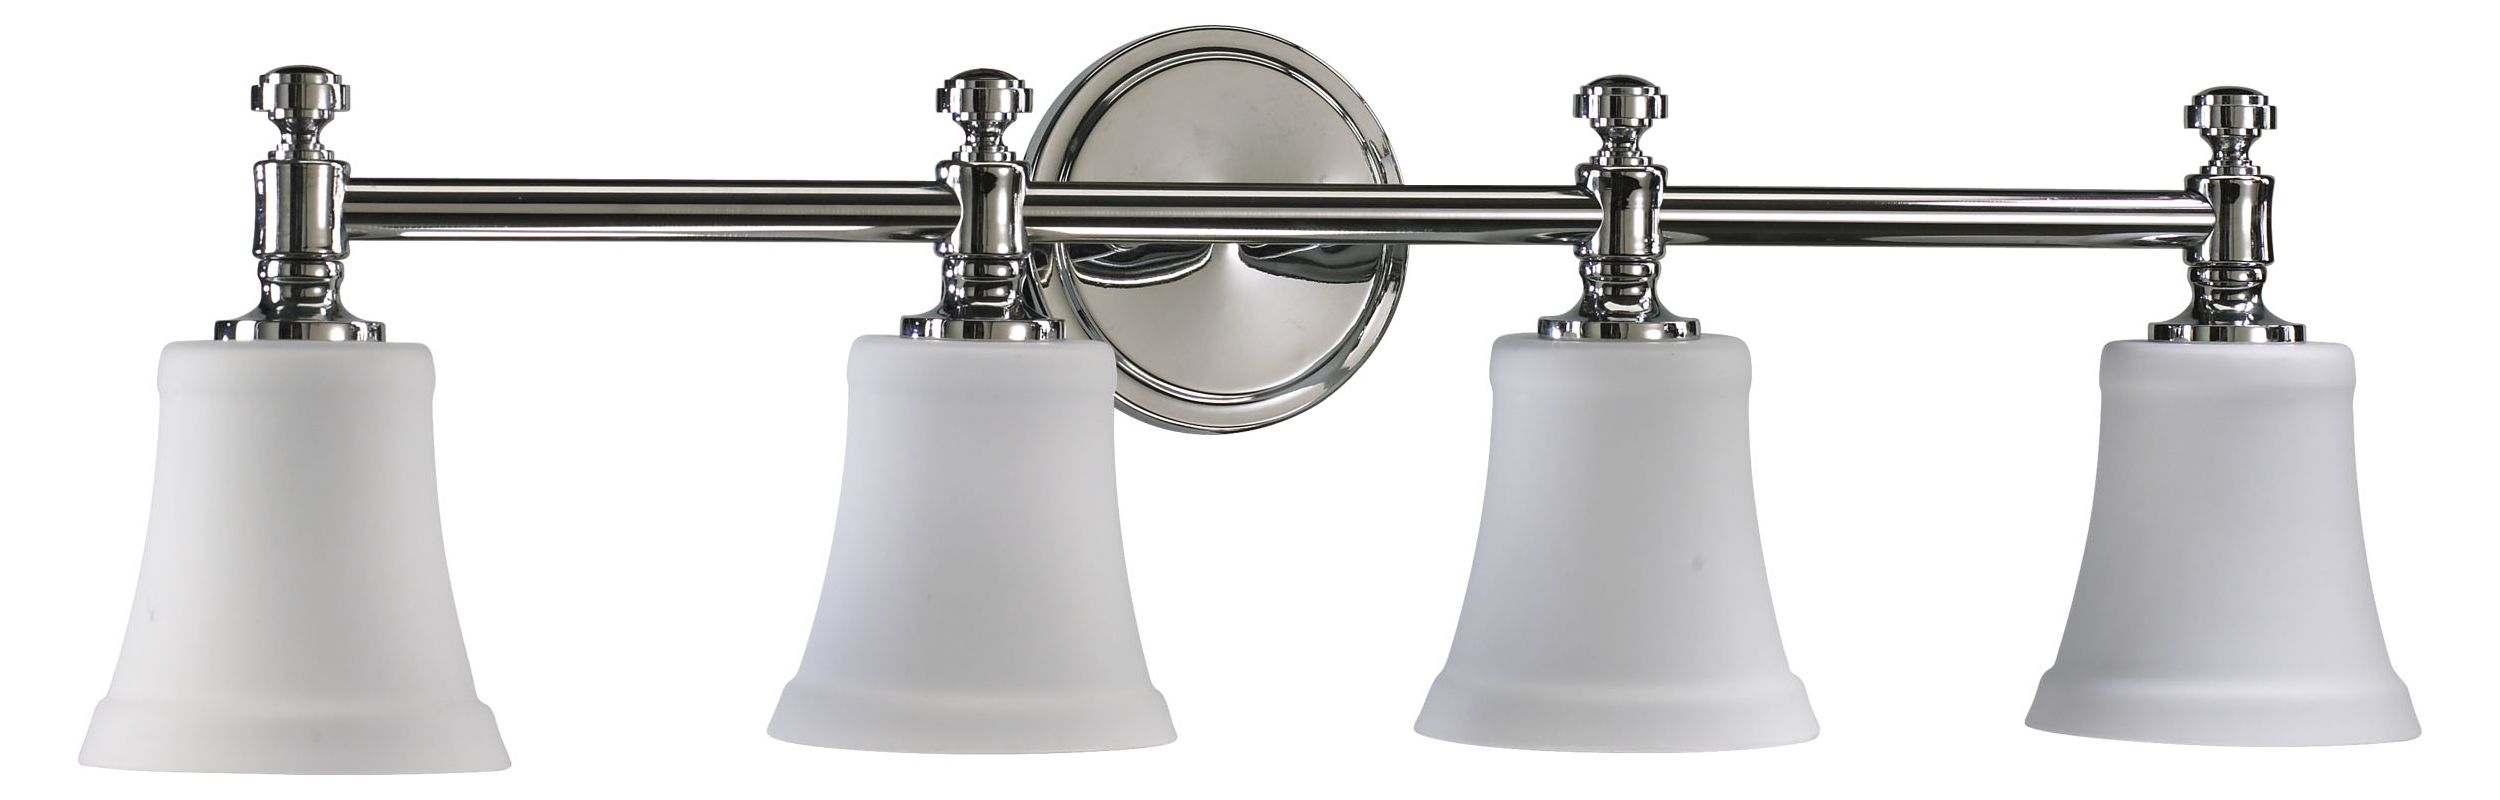 "Quorum International 5122-4-14 Four Light 30"" Wide Bathroom Fixture"